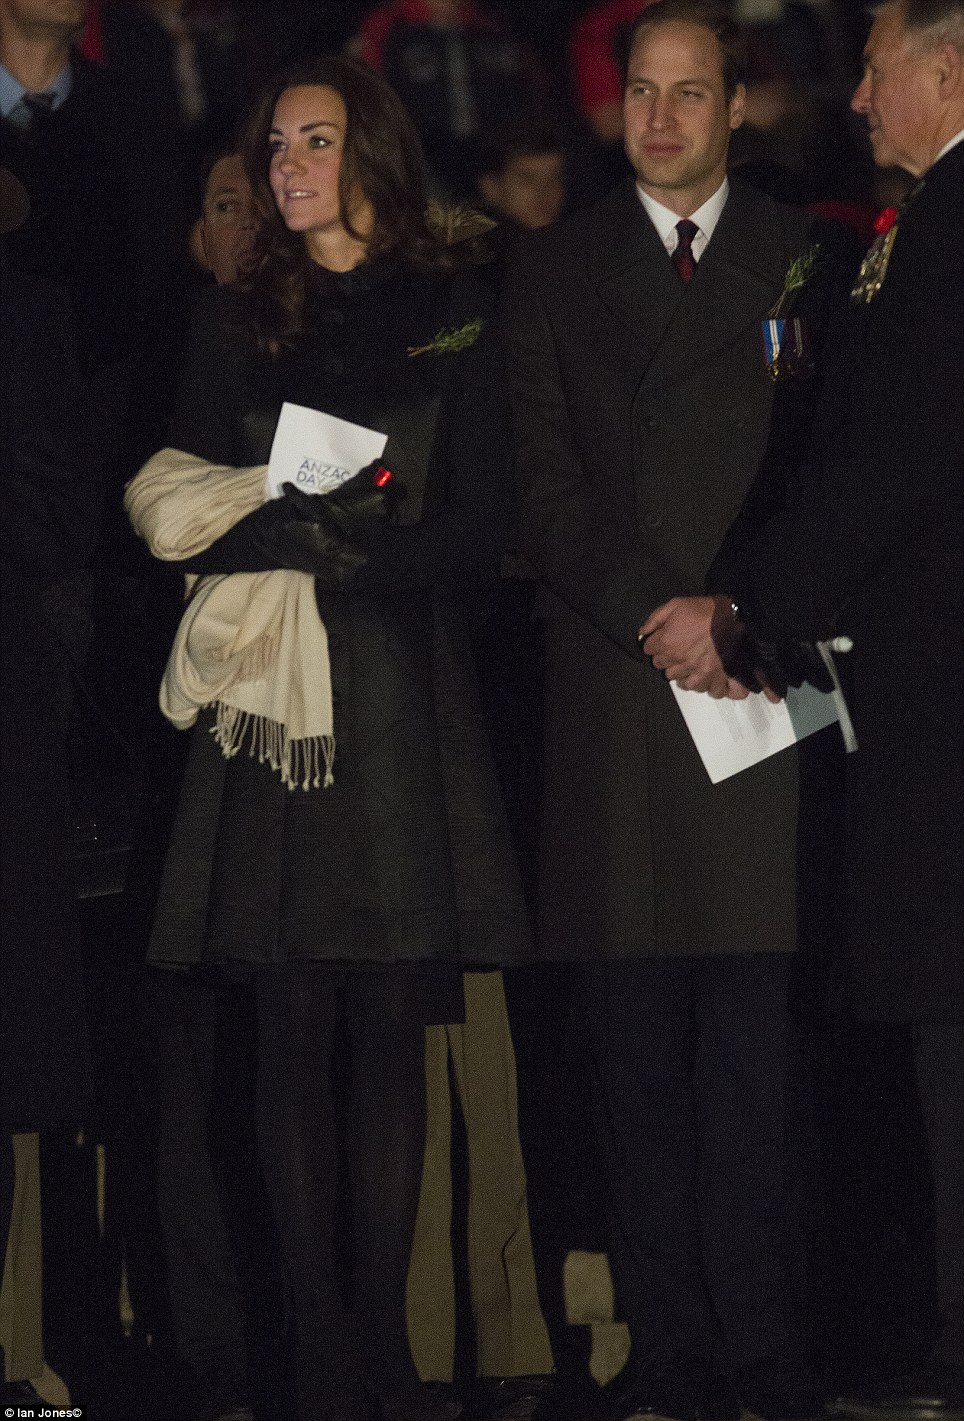 Kate and William both wore a sprig of rosemary traditionally worn by Australians and New Zealanders on their main remembrance event